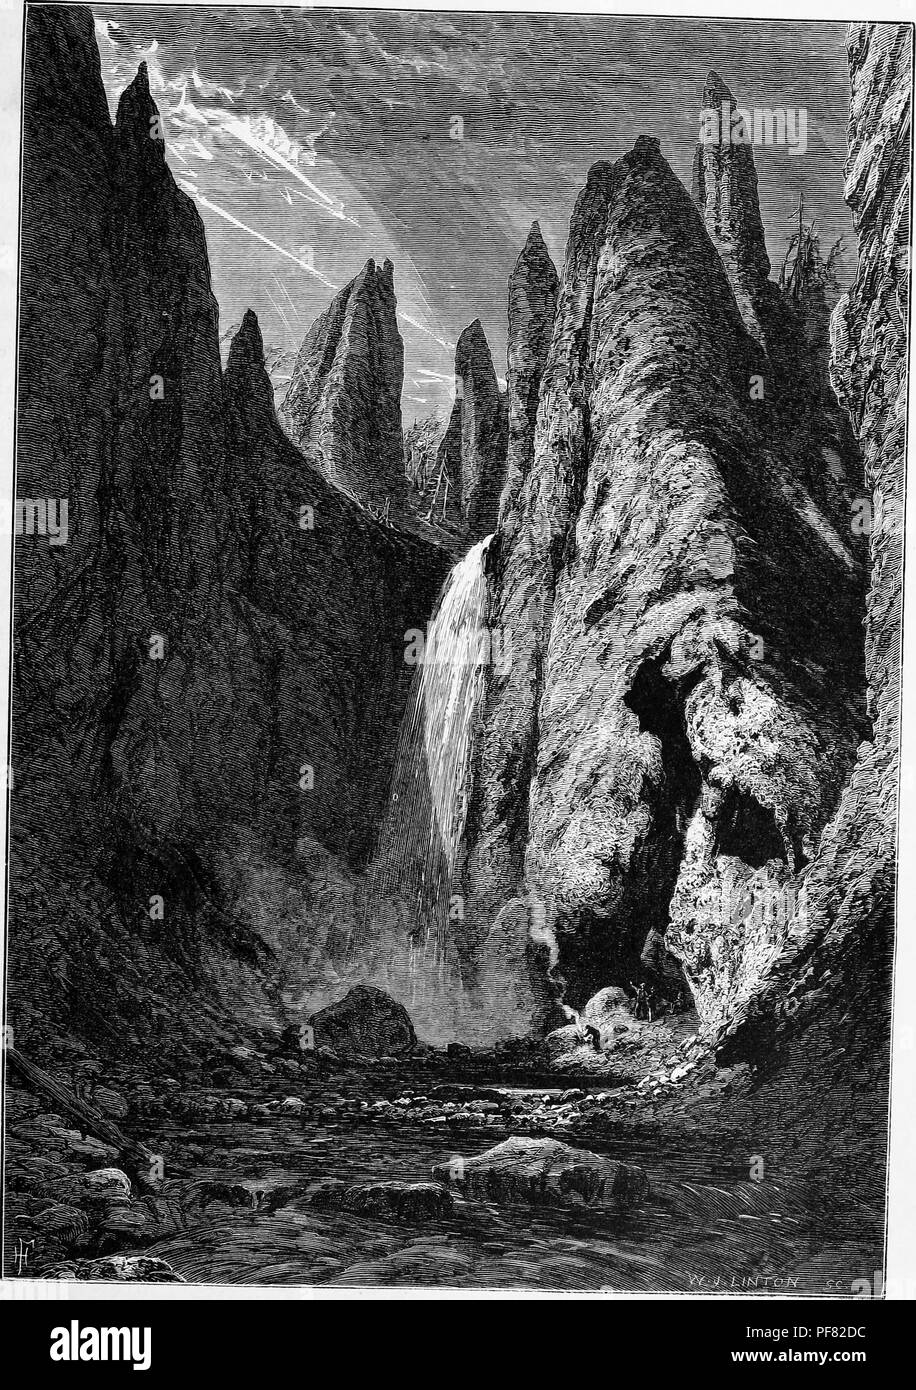 Black and white vintage print depicting a person building a fire in the upper right foreground, with Tower Falls, a waterfall on Tower Creek, located in the northeastern section of Yellowstone National Park, in Wyoming, USA, illustrated by WJ Linton, and published in William Cullen Bryant's edited volume 'Picturesque America; or, The Land We Live In', 1872. Courtesy Internet Archive. () - Stock Image